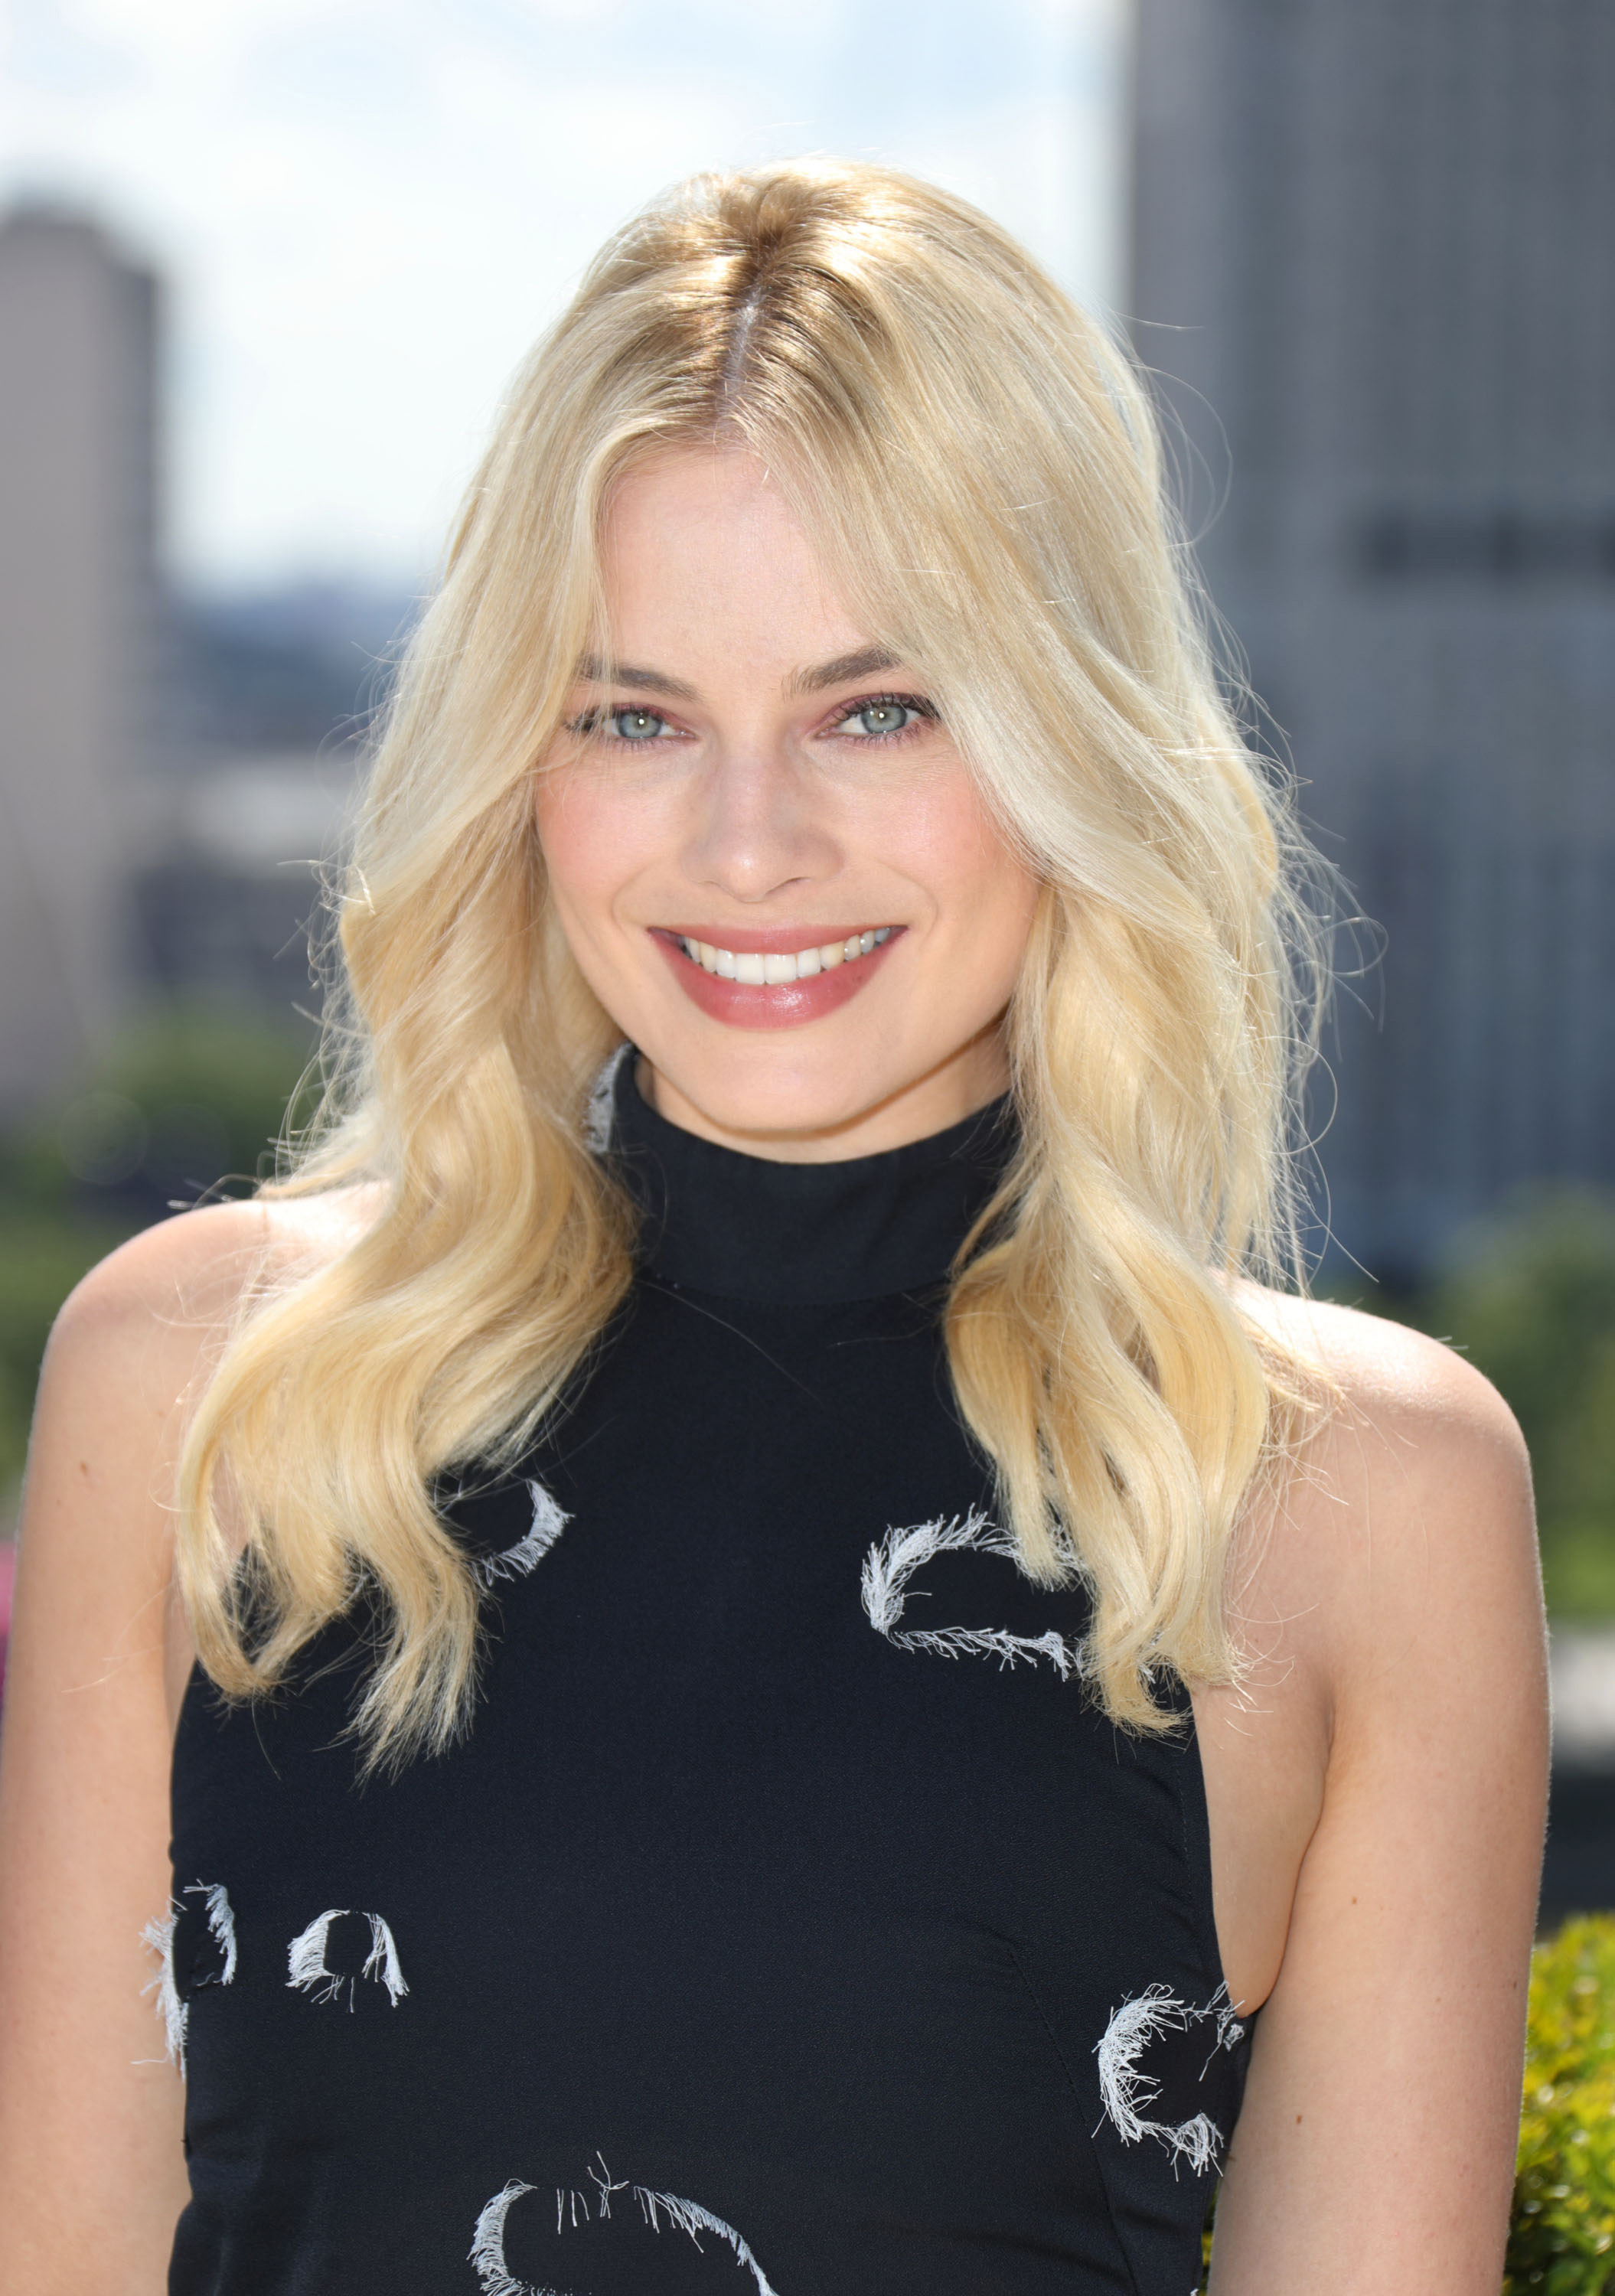 <p>Margot Robbie may be a Neighbours graduate, but her approach to beauty is more Rue Saint Honoré than Ramsay Street. Like the French, Robbie understands the power of relaxed hair on the red carpet and often uses a slightly dishevelled style to dress down her more high-octane fashion choices. This makes  her go-to 'dos ideal for when you can't make it to the salon or need to get some extra mileage out of a blow dry. Click through to see some of her best hair moments – and what to do with the looks on day (or week) three.</p> <p>Freshly dyed hair</p>